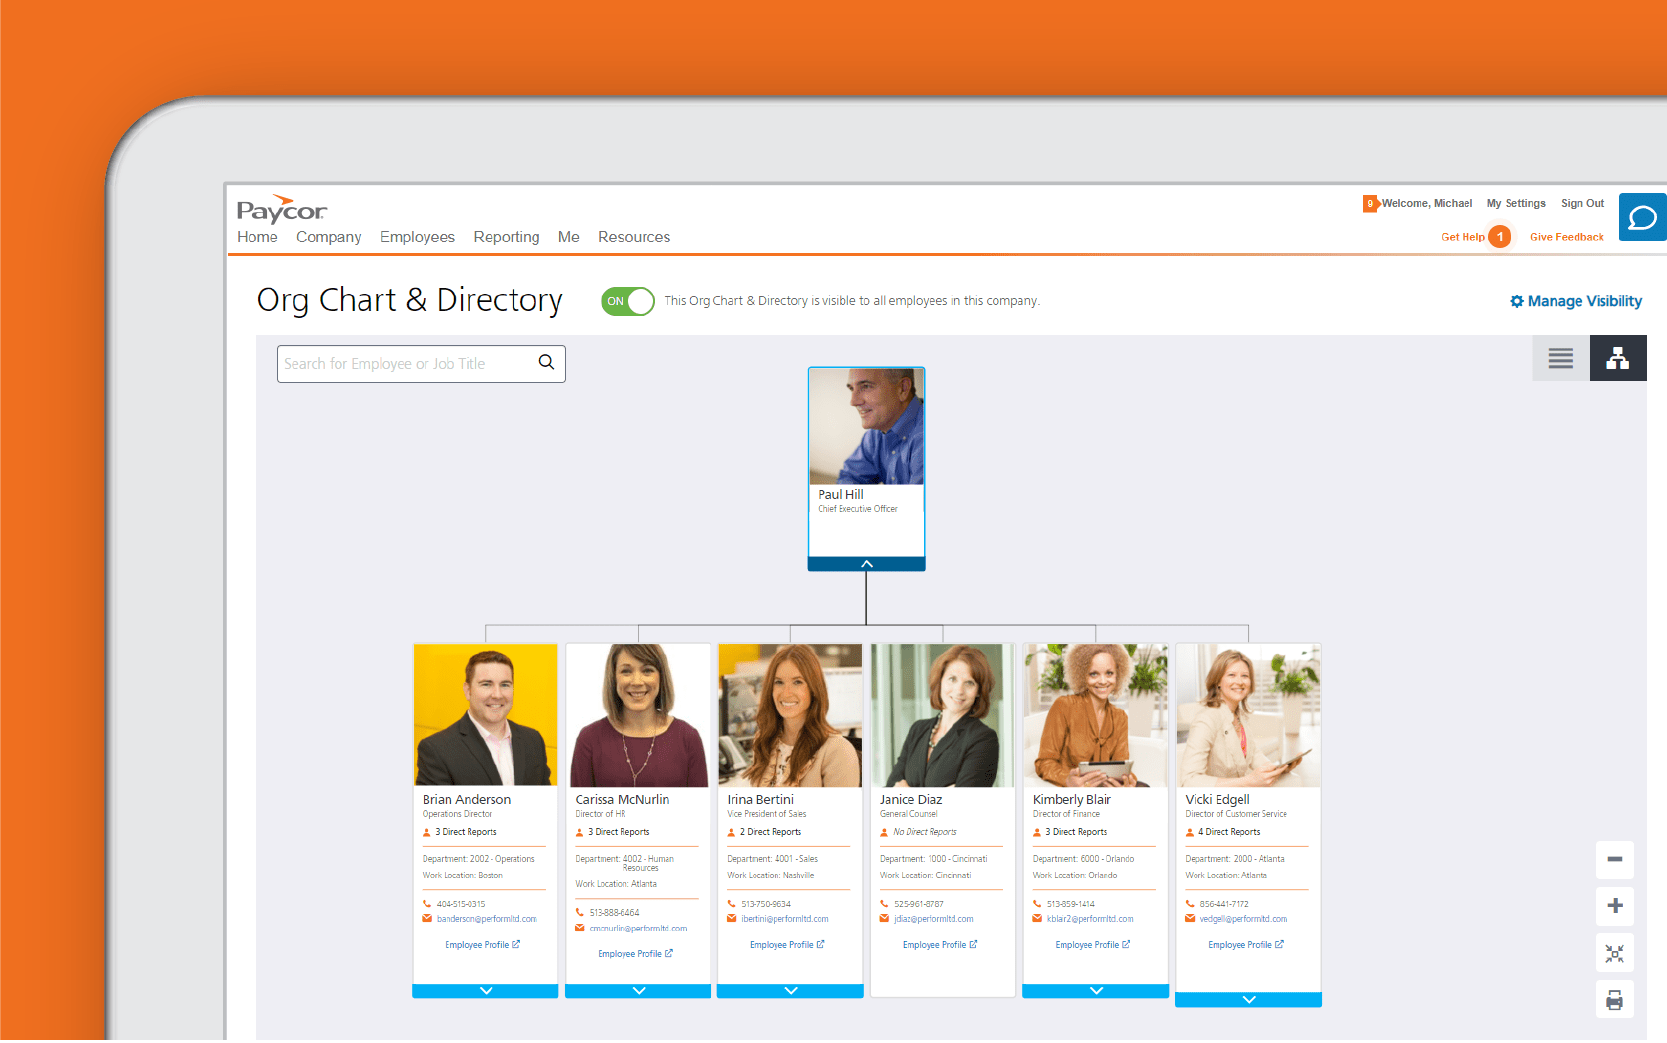 Corner of tablet showing Paycor org chart dashboard against orange background